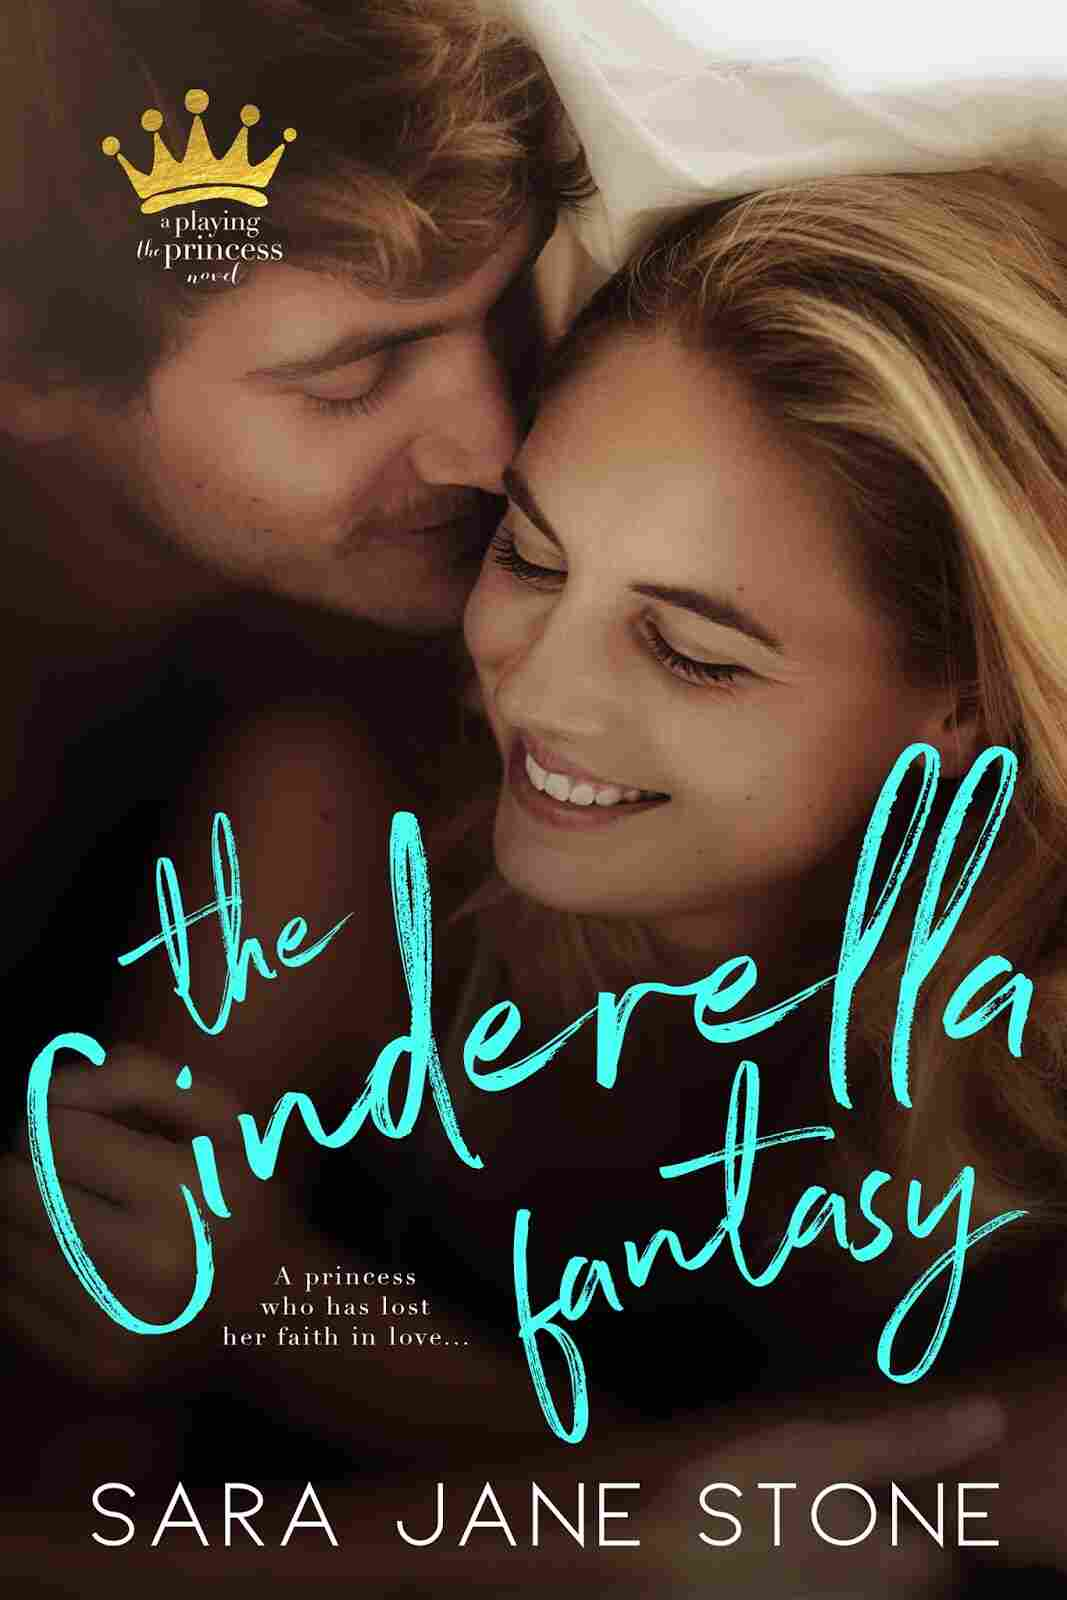 The Cinderella Fantasy, by Sara Jane Stone